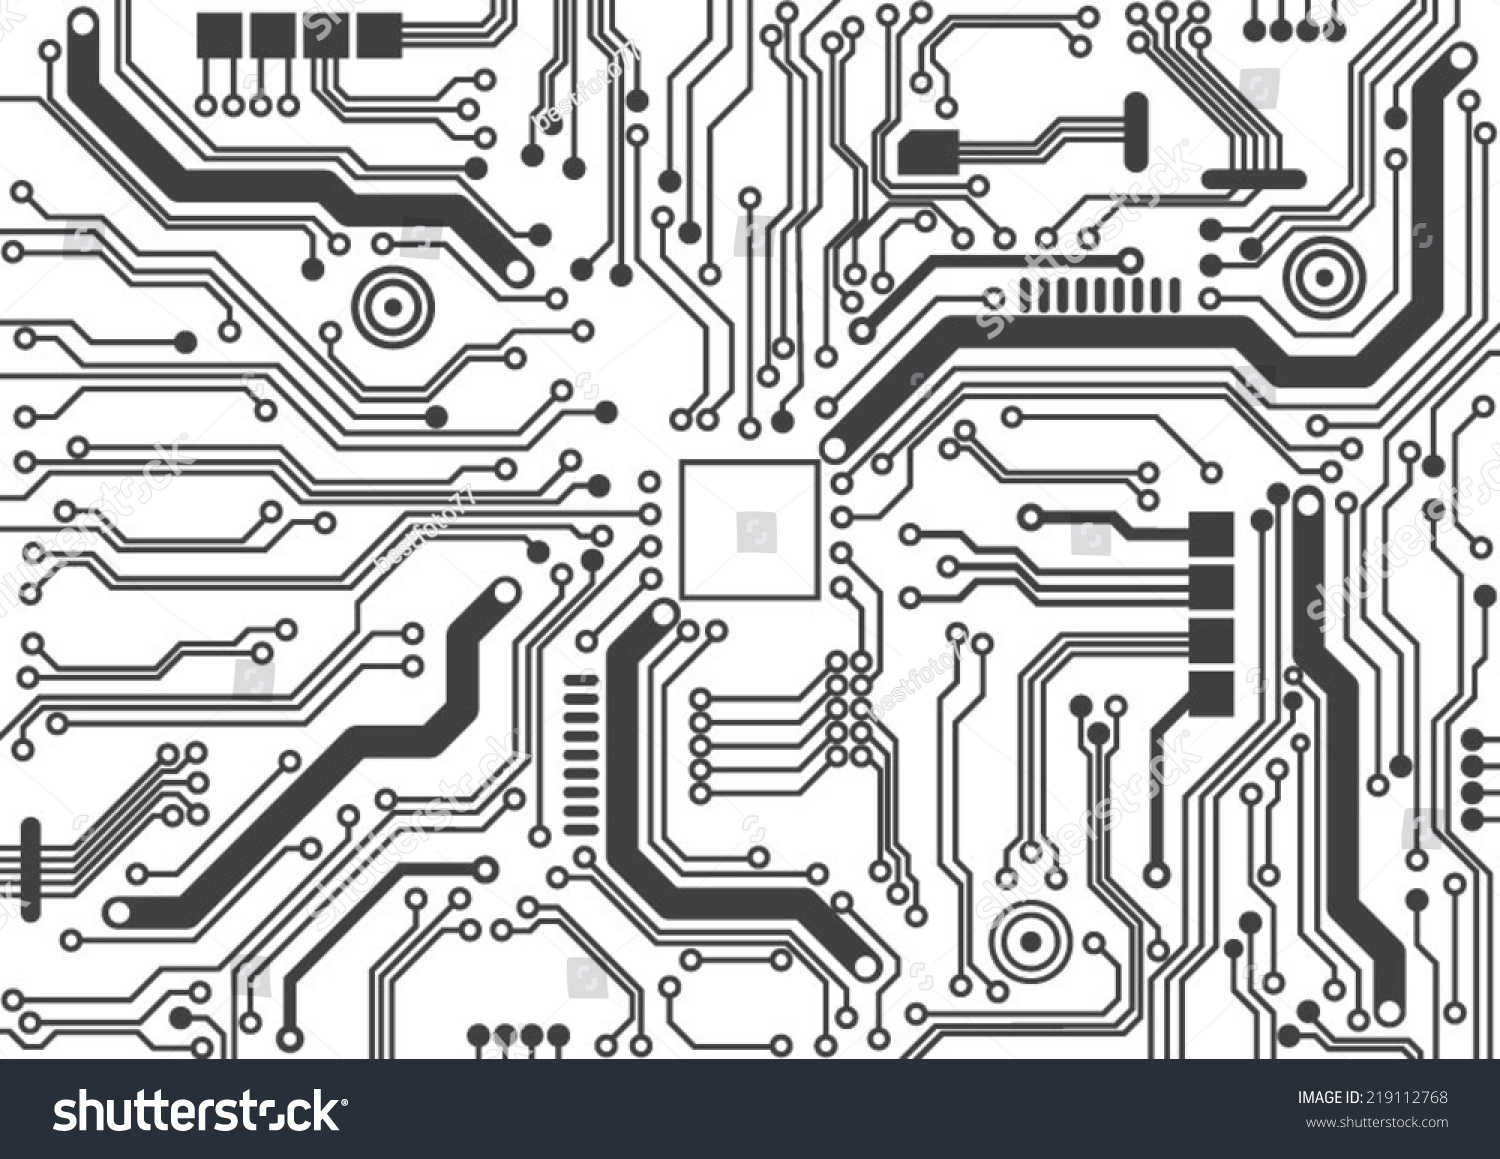 Circuit Board Background Texture Stock Vector Royalty Free